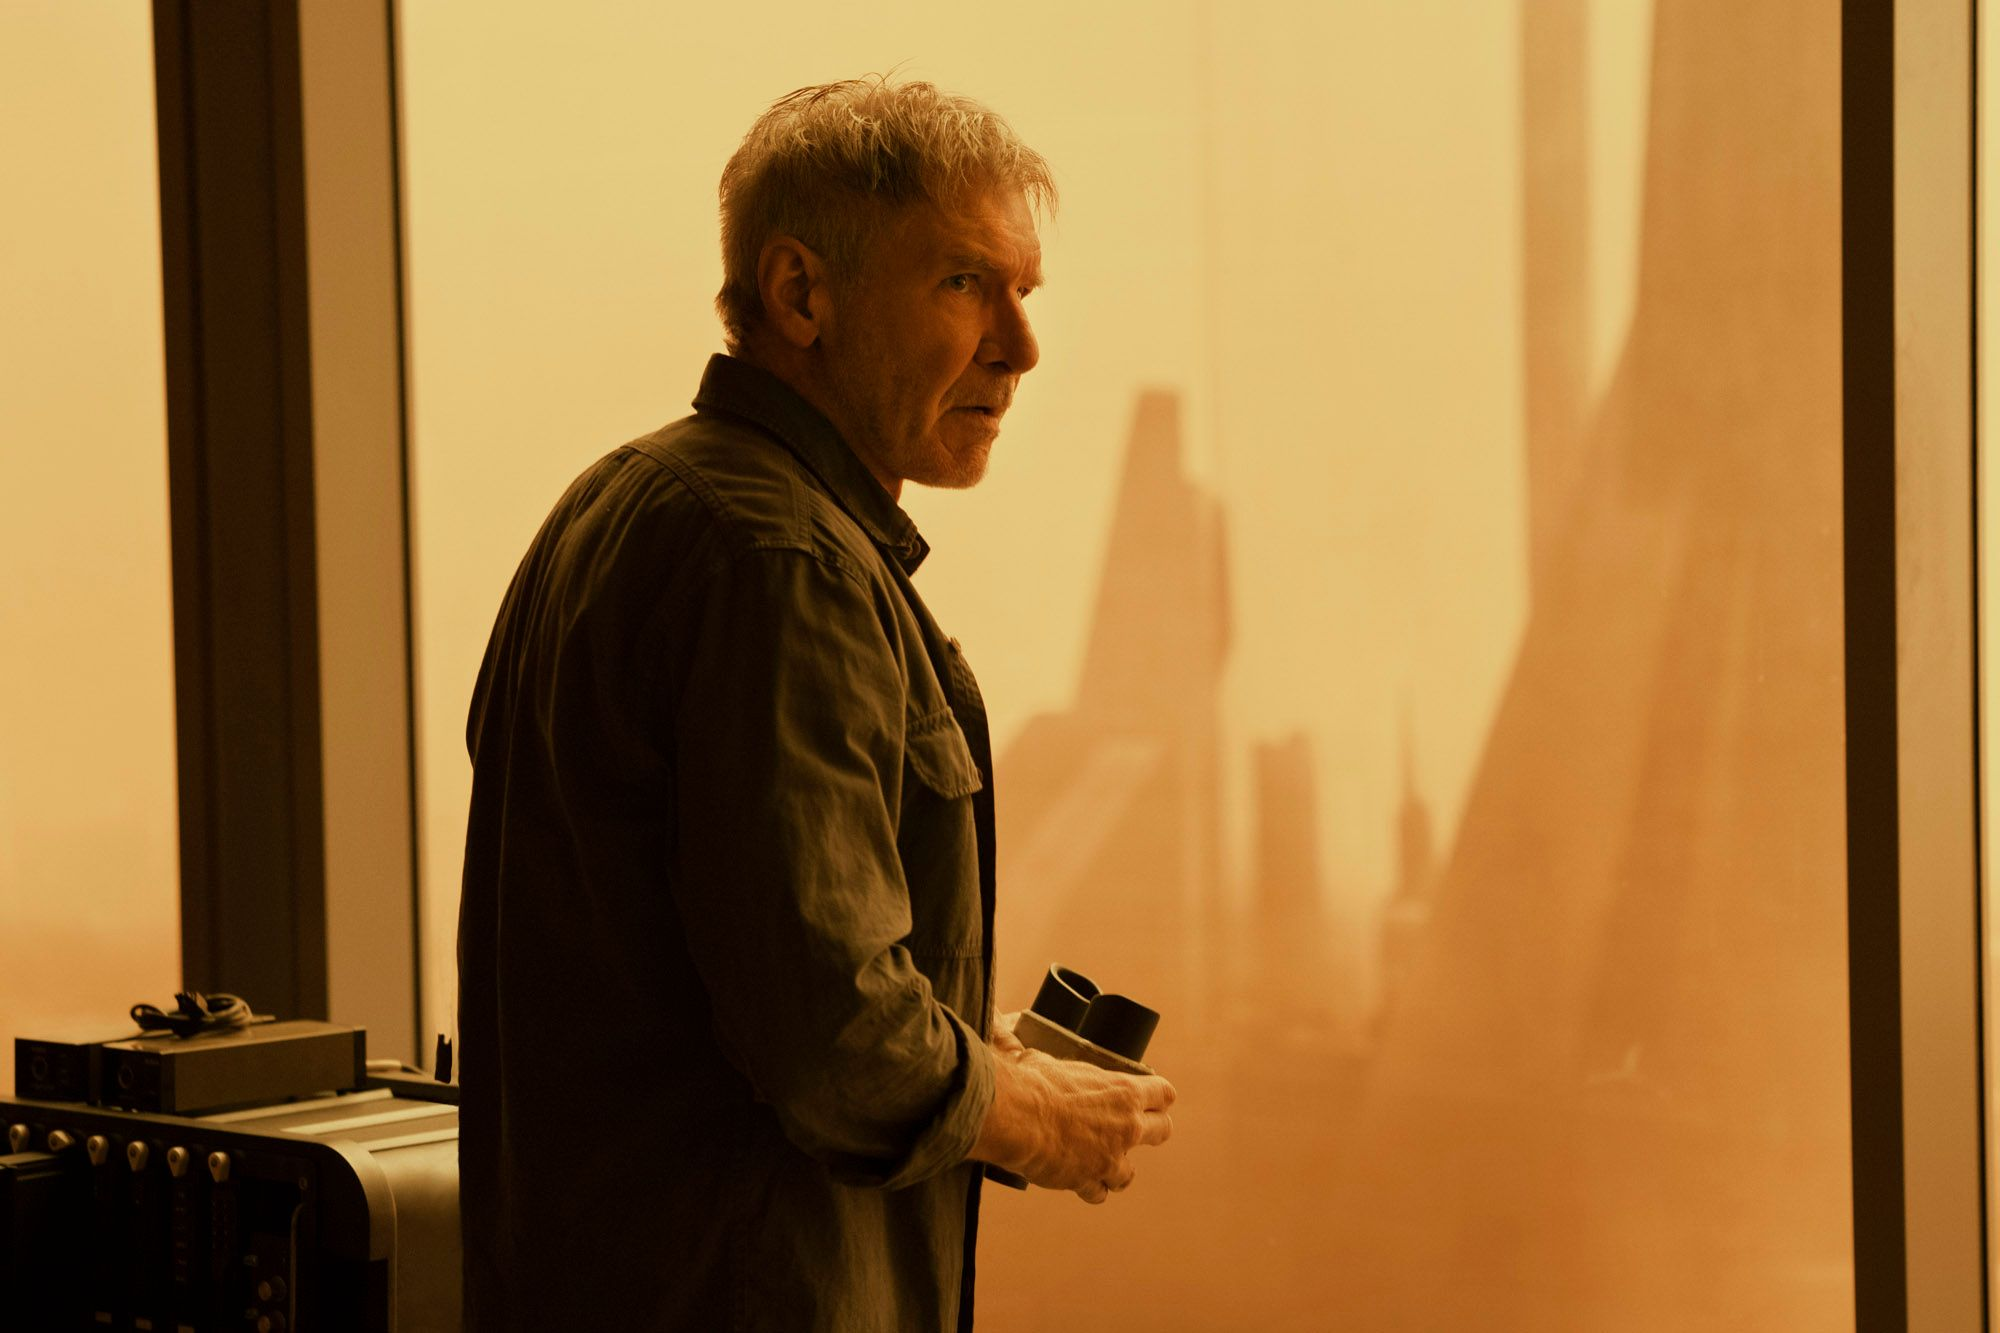 Blade Runner 2049 Ending Explained - The Power of Choice ... - photo#2